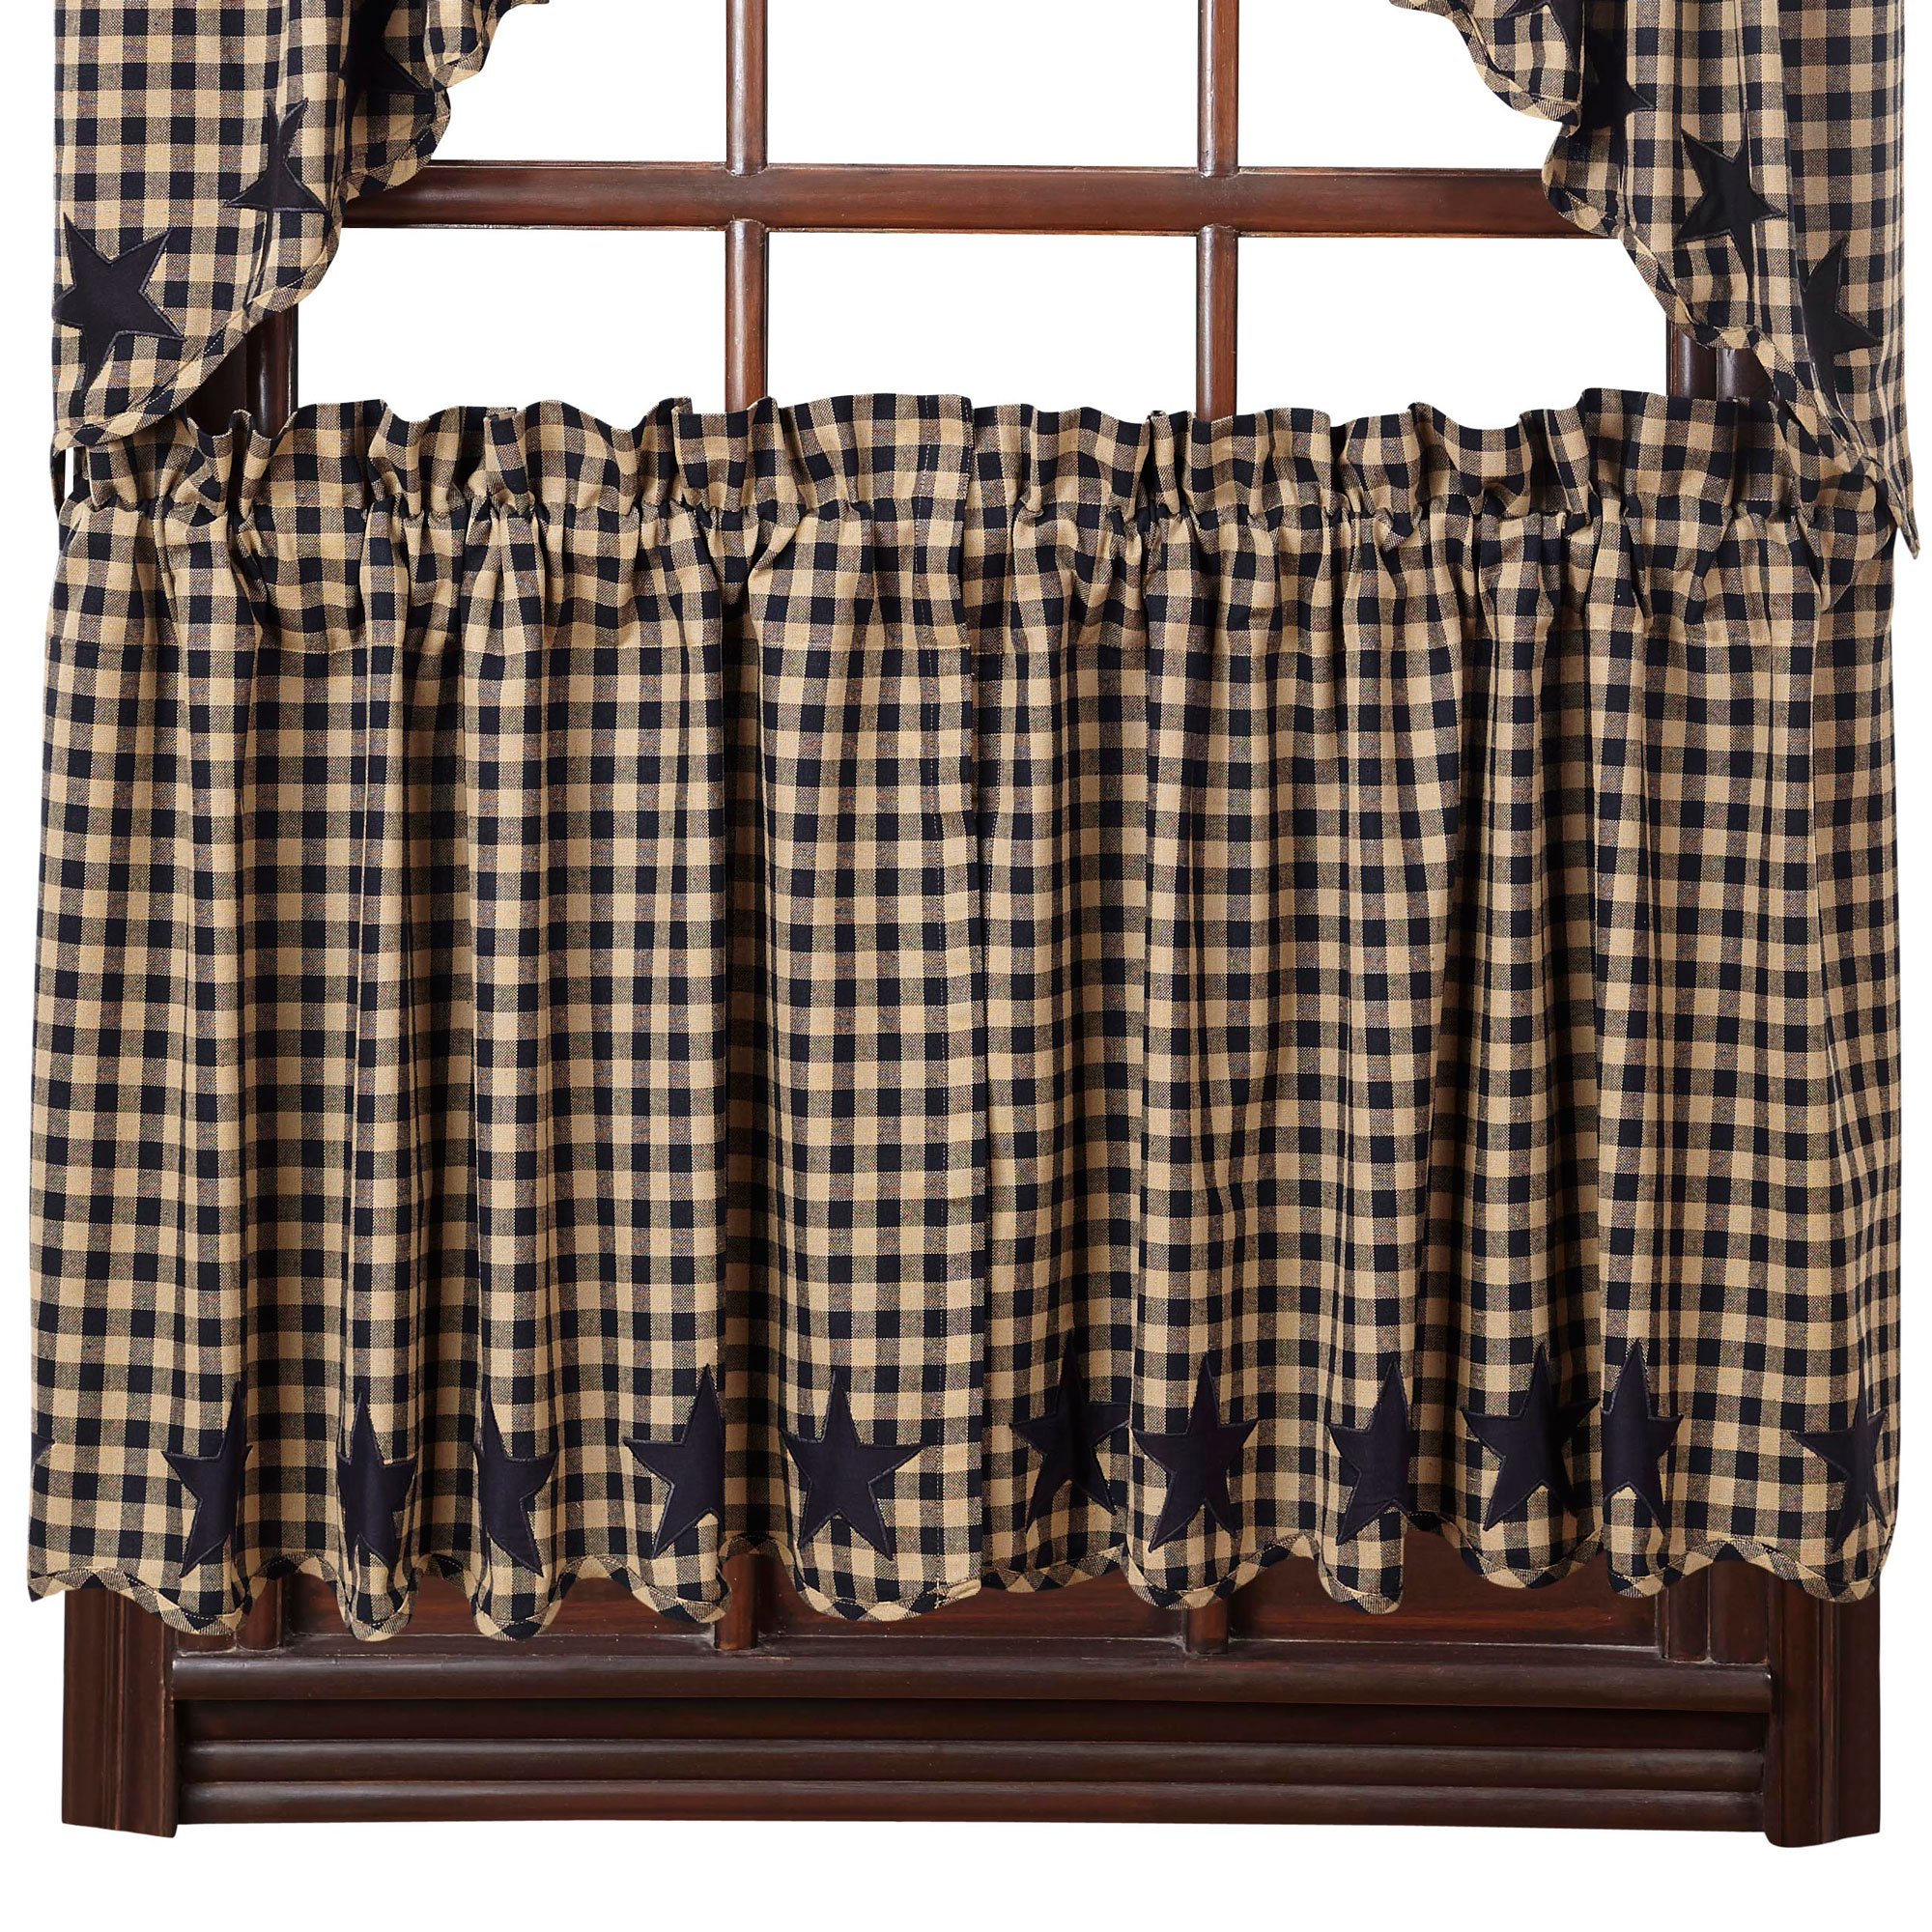 Star And Check Scalloped Country Curtain Tiers Navy Black